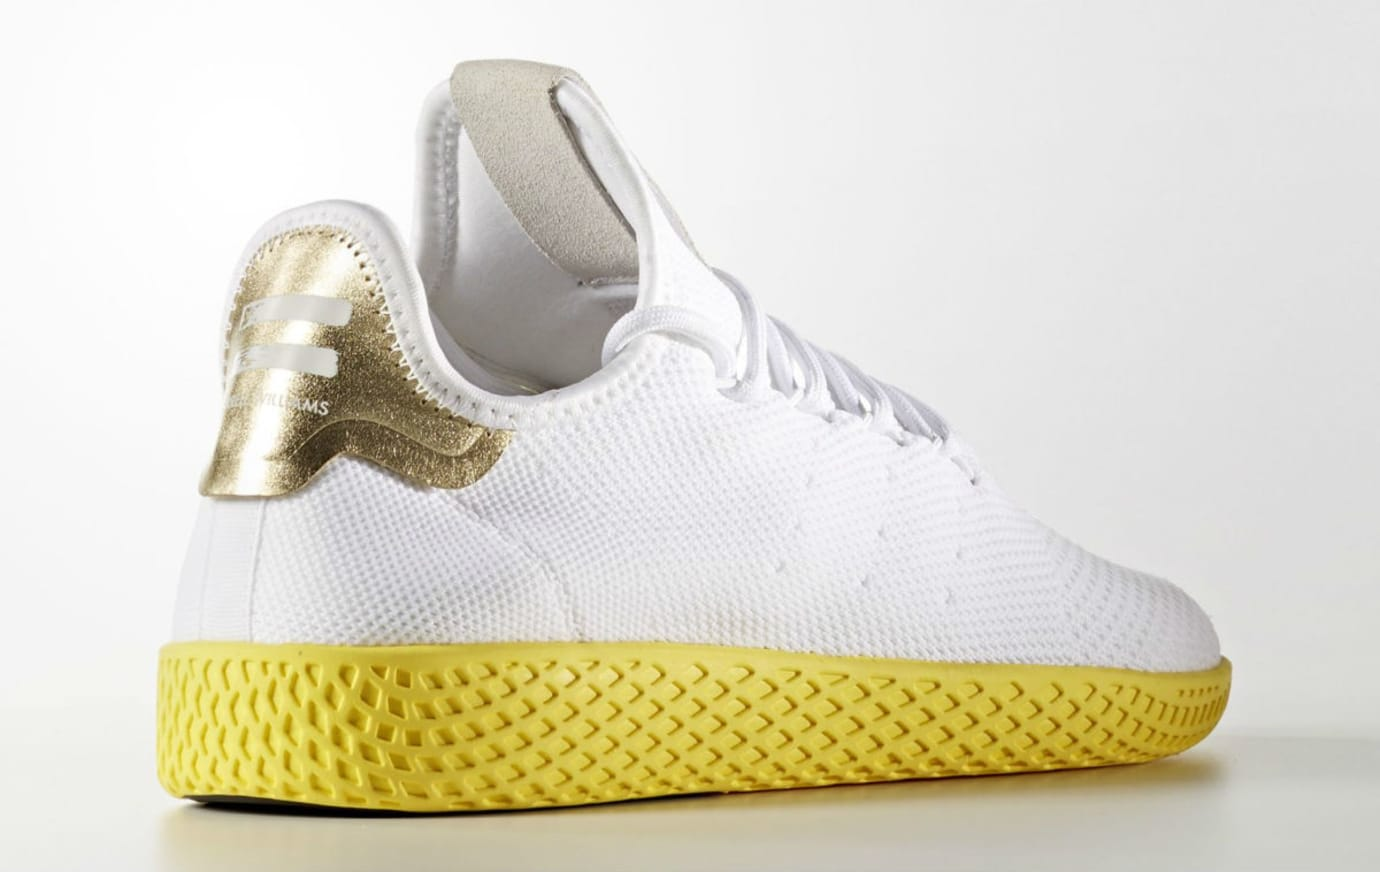 Pharrell x Adidas Tennis Hu White Yellow Release Date Lateral BY2674 6d42c433b